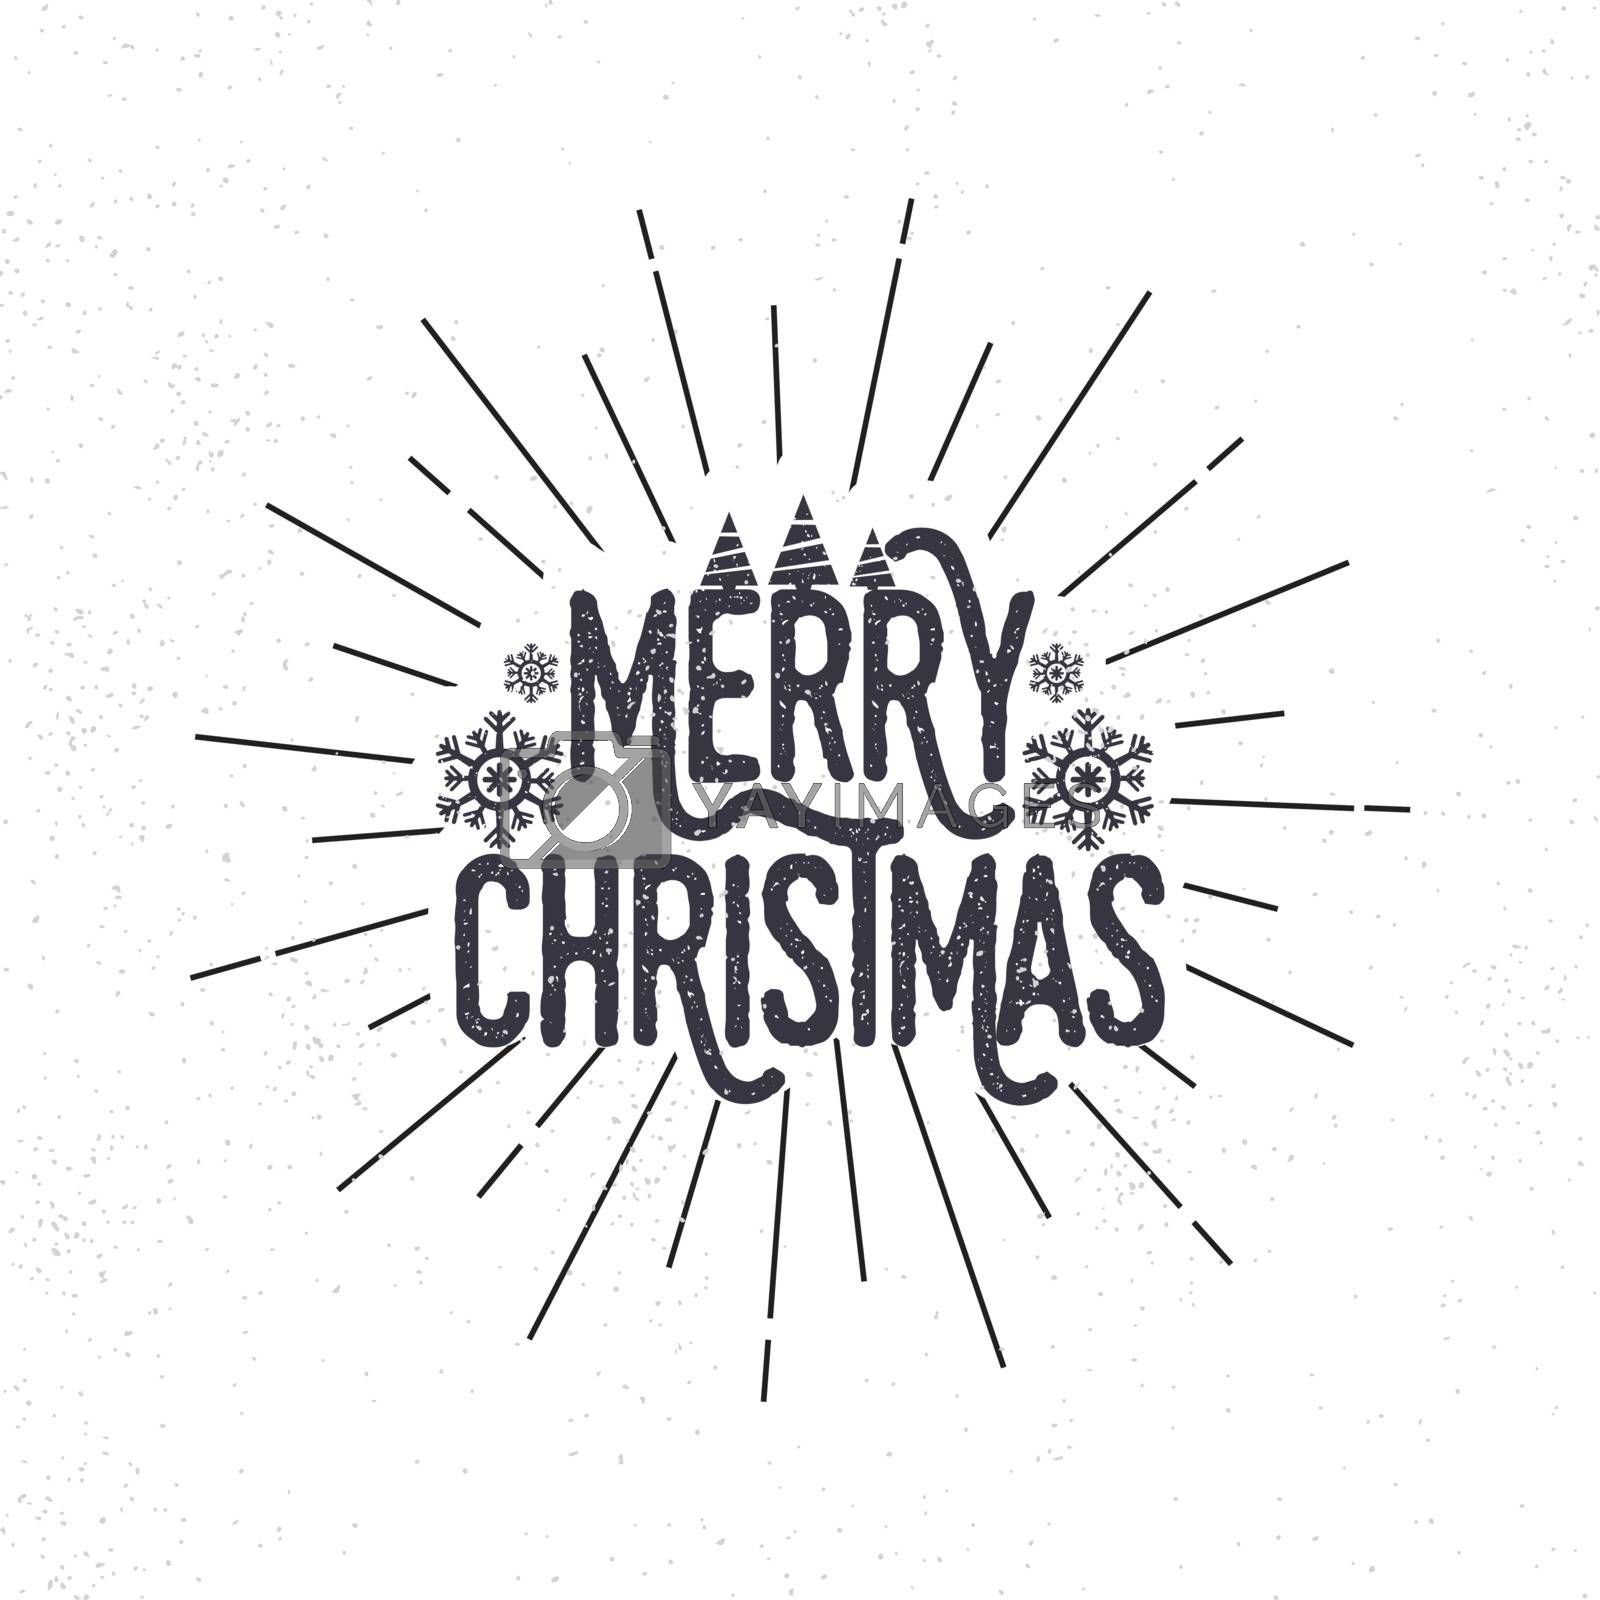 Creative text Merry Christmas on white background, Can be used as poster, banner or flyer design.